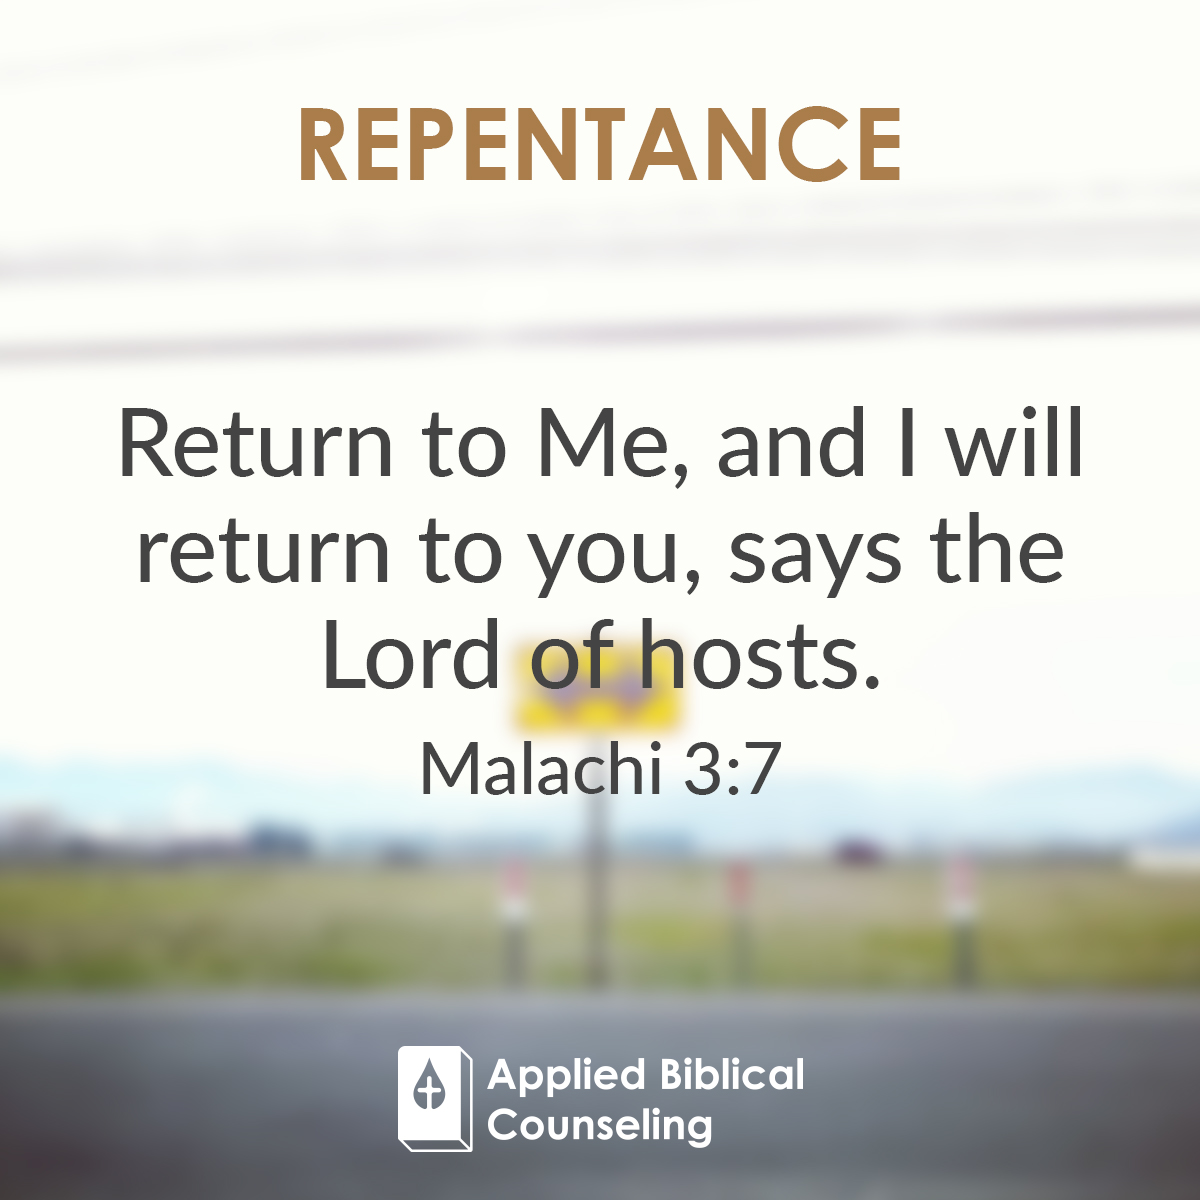 Applied Biblical Counseling Facebook w19 Repentance 3